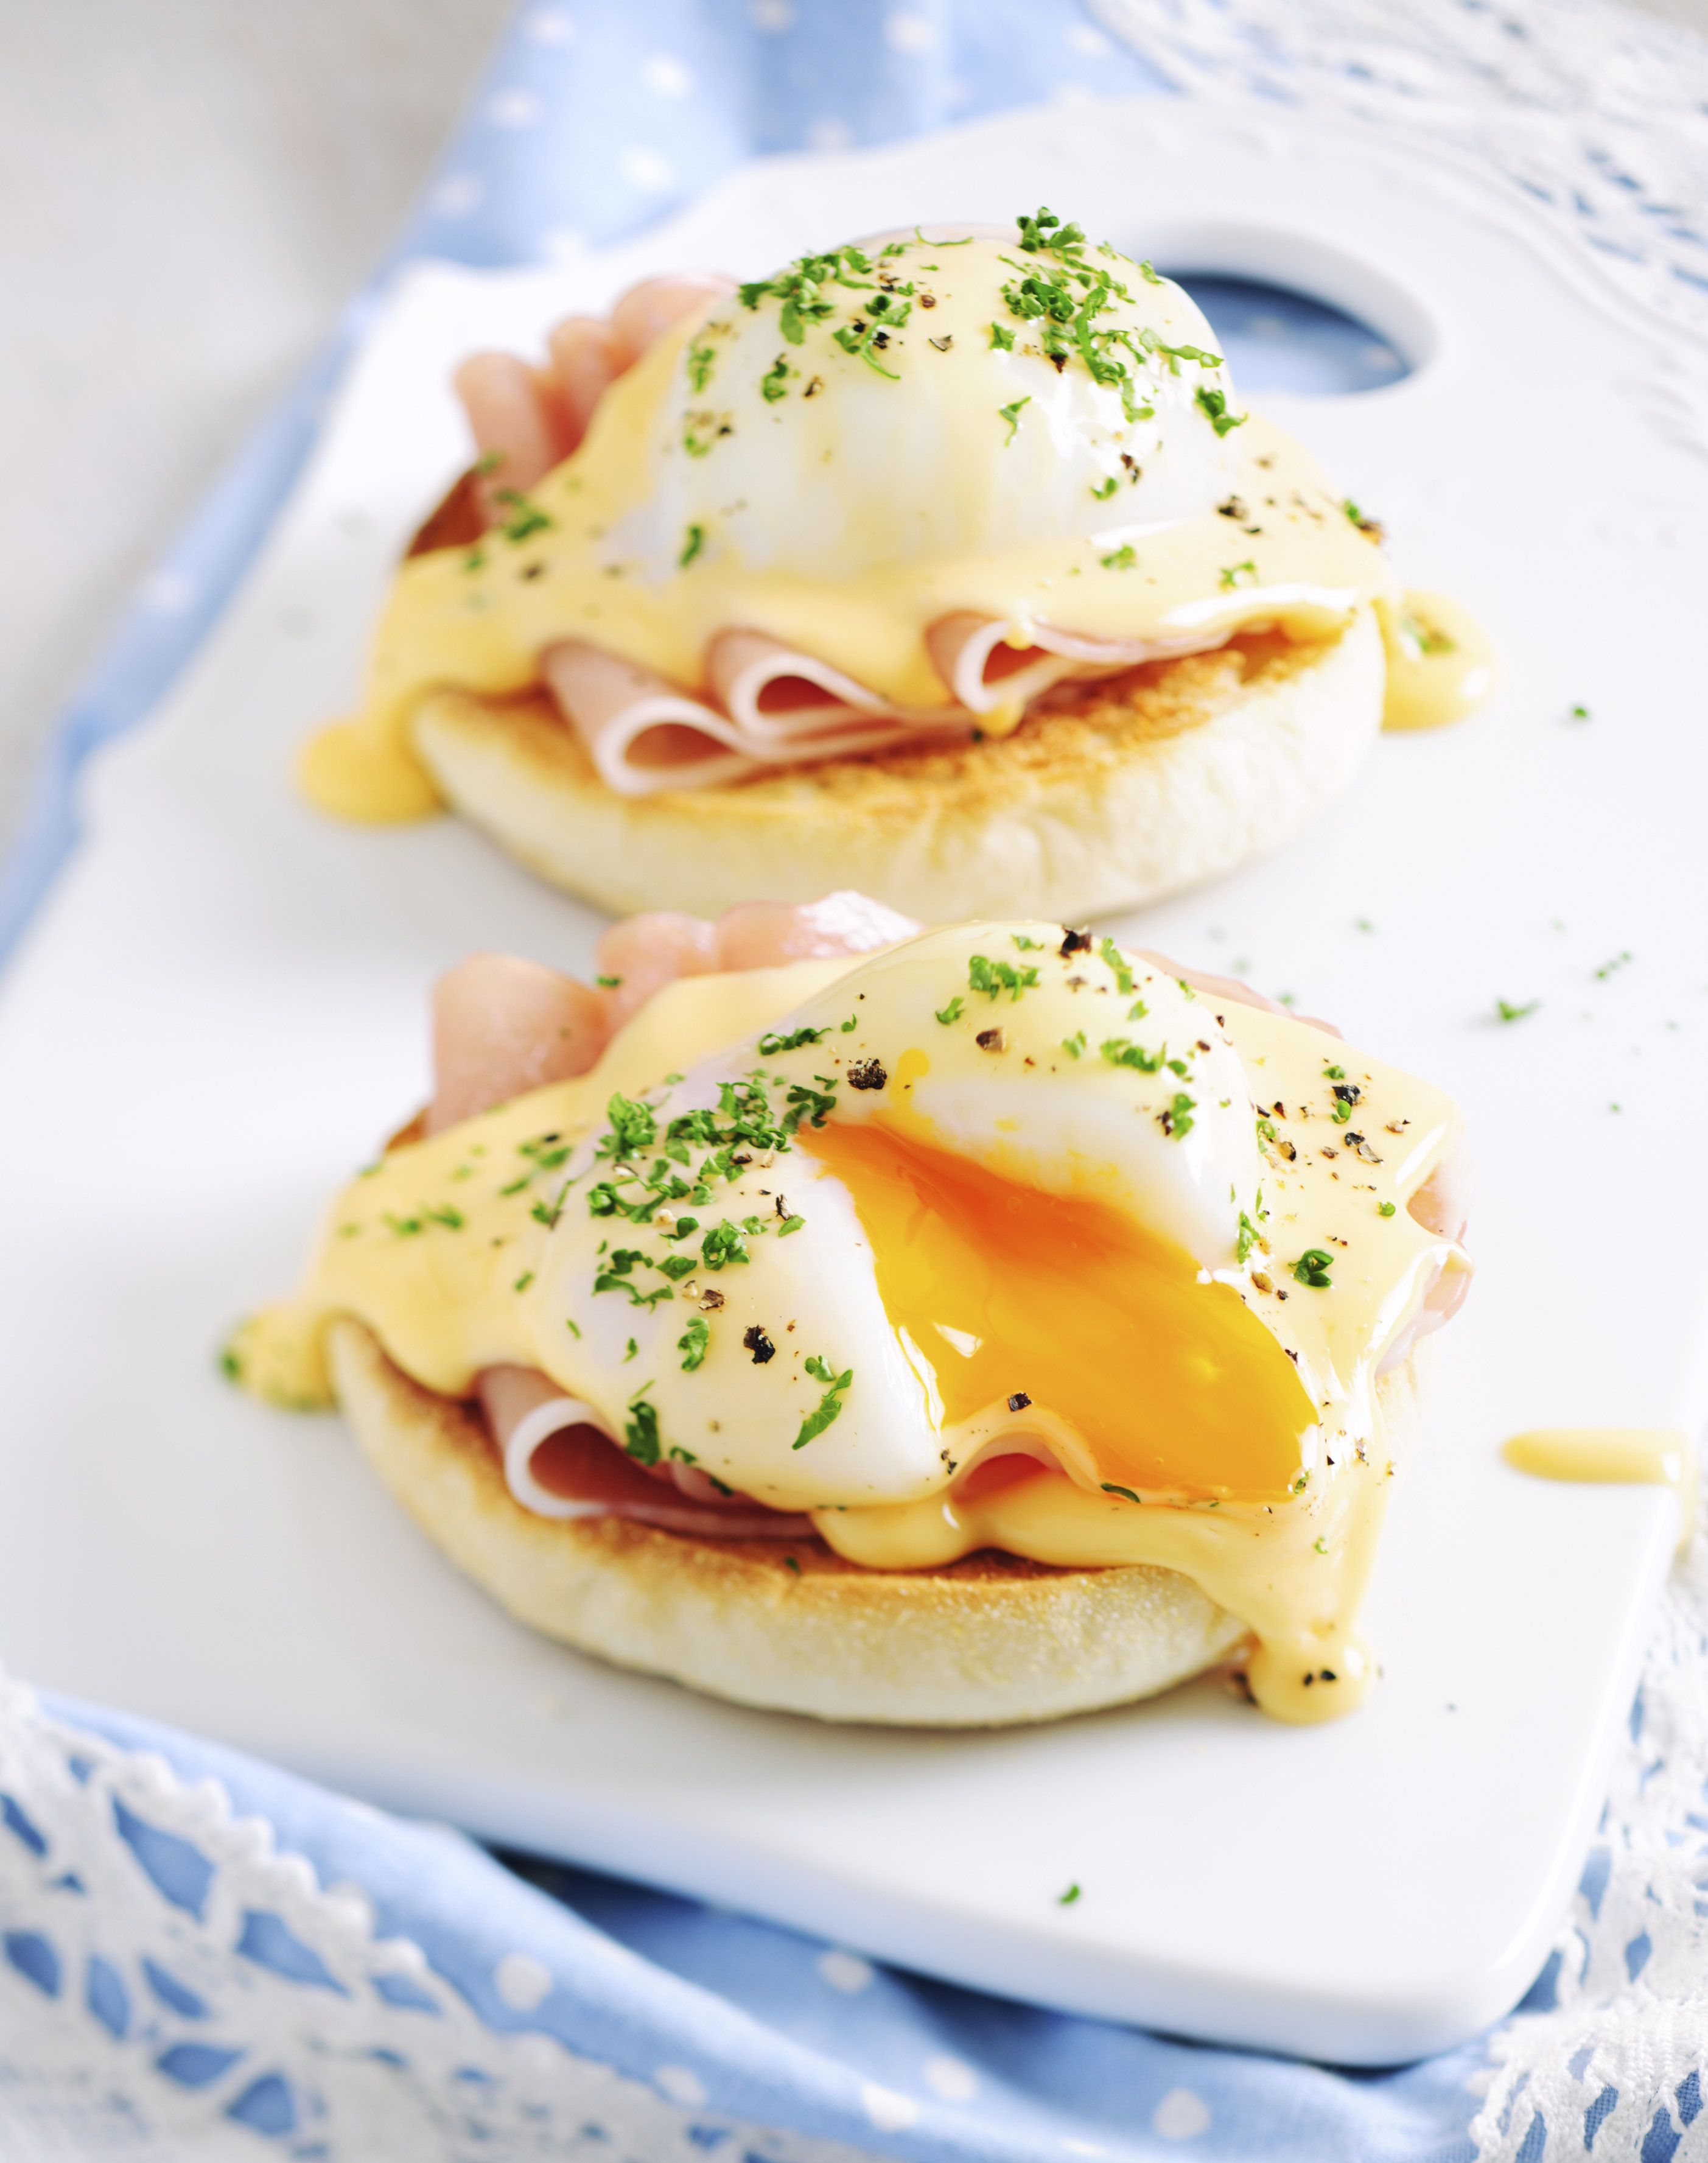 Eggs Benedict Sandwiches Served on Porcelain Board. Selective Focus, Shallow DOF, Tilt&Shift Lens Used